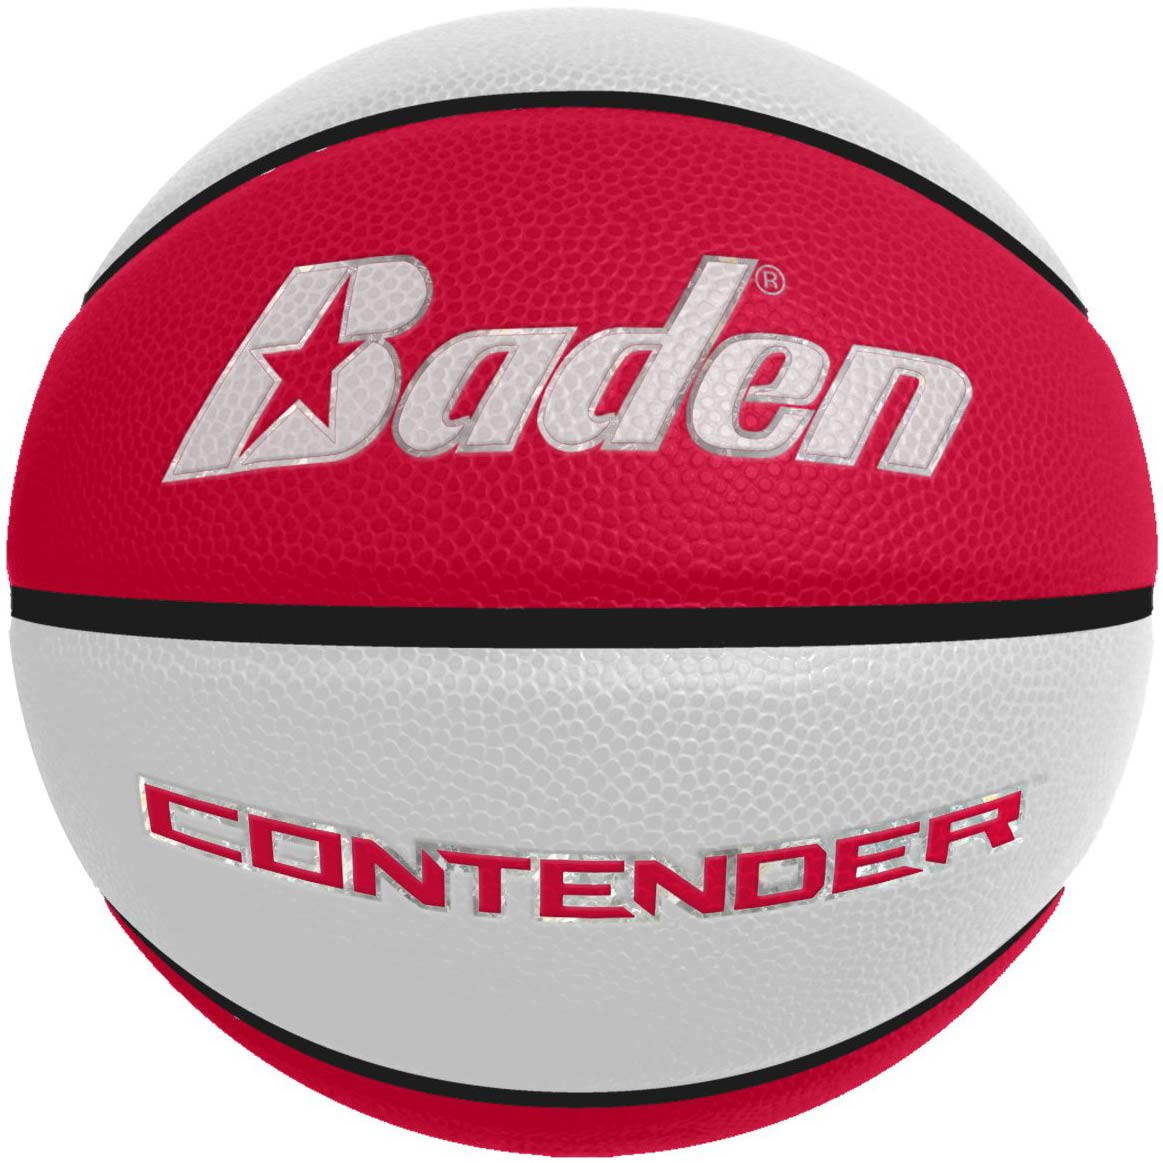 Red/White Men's Official Size Contender Performance Composite Basketball